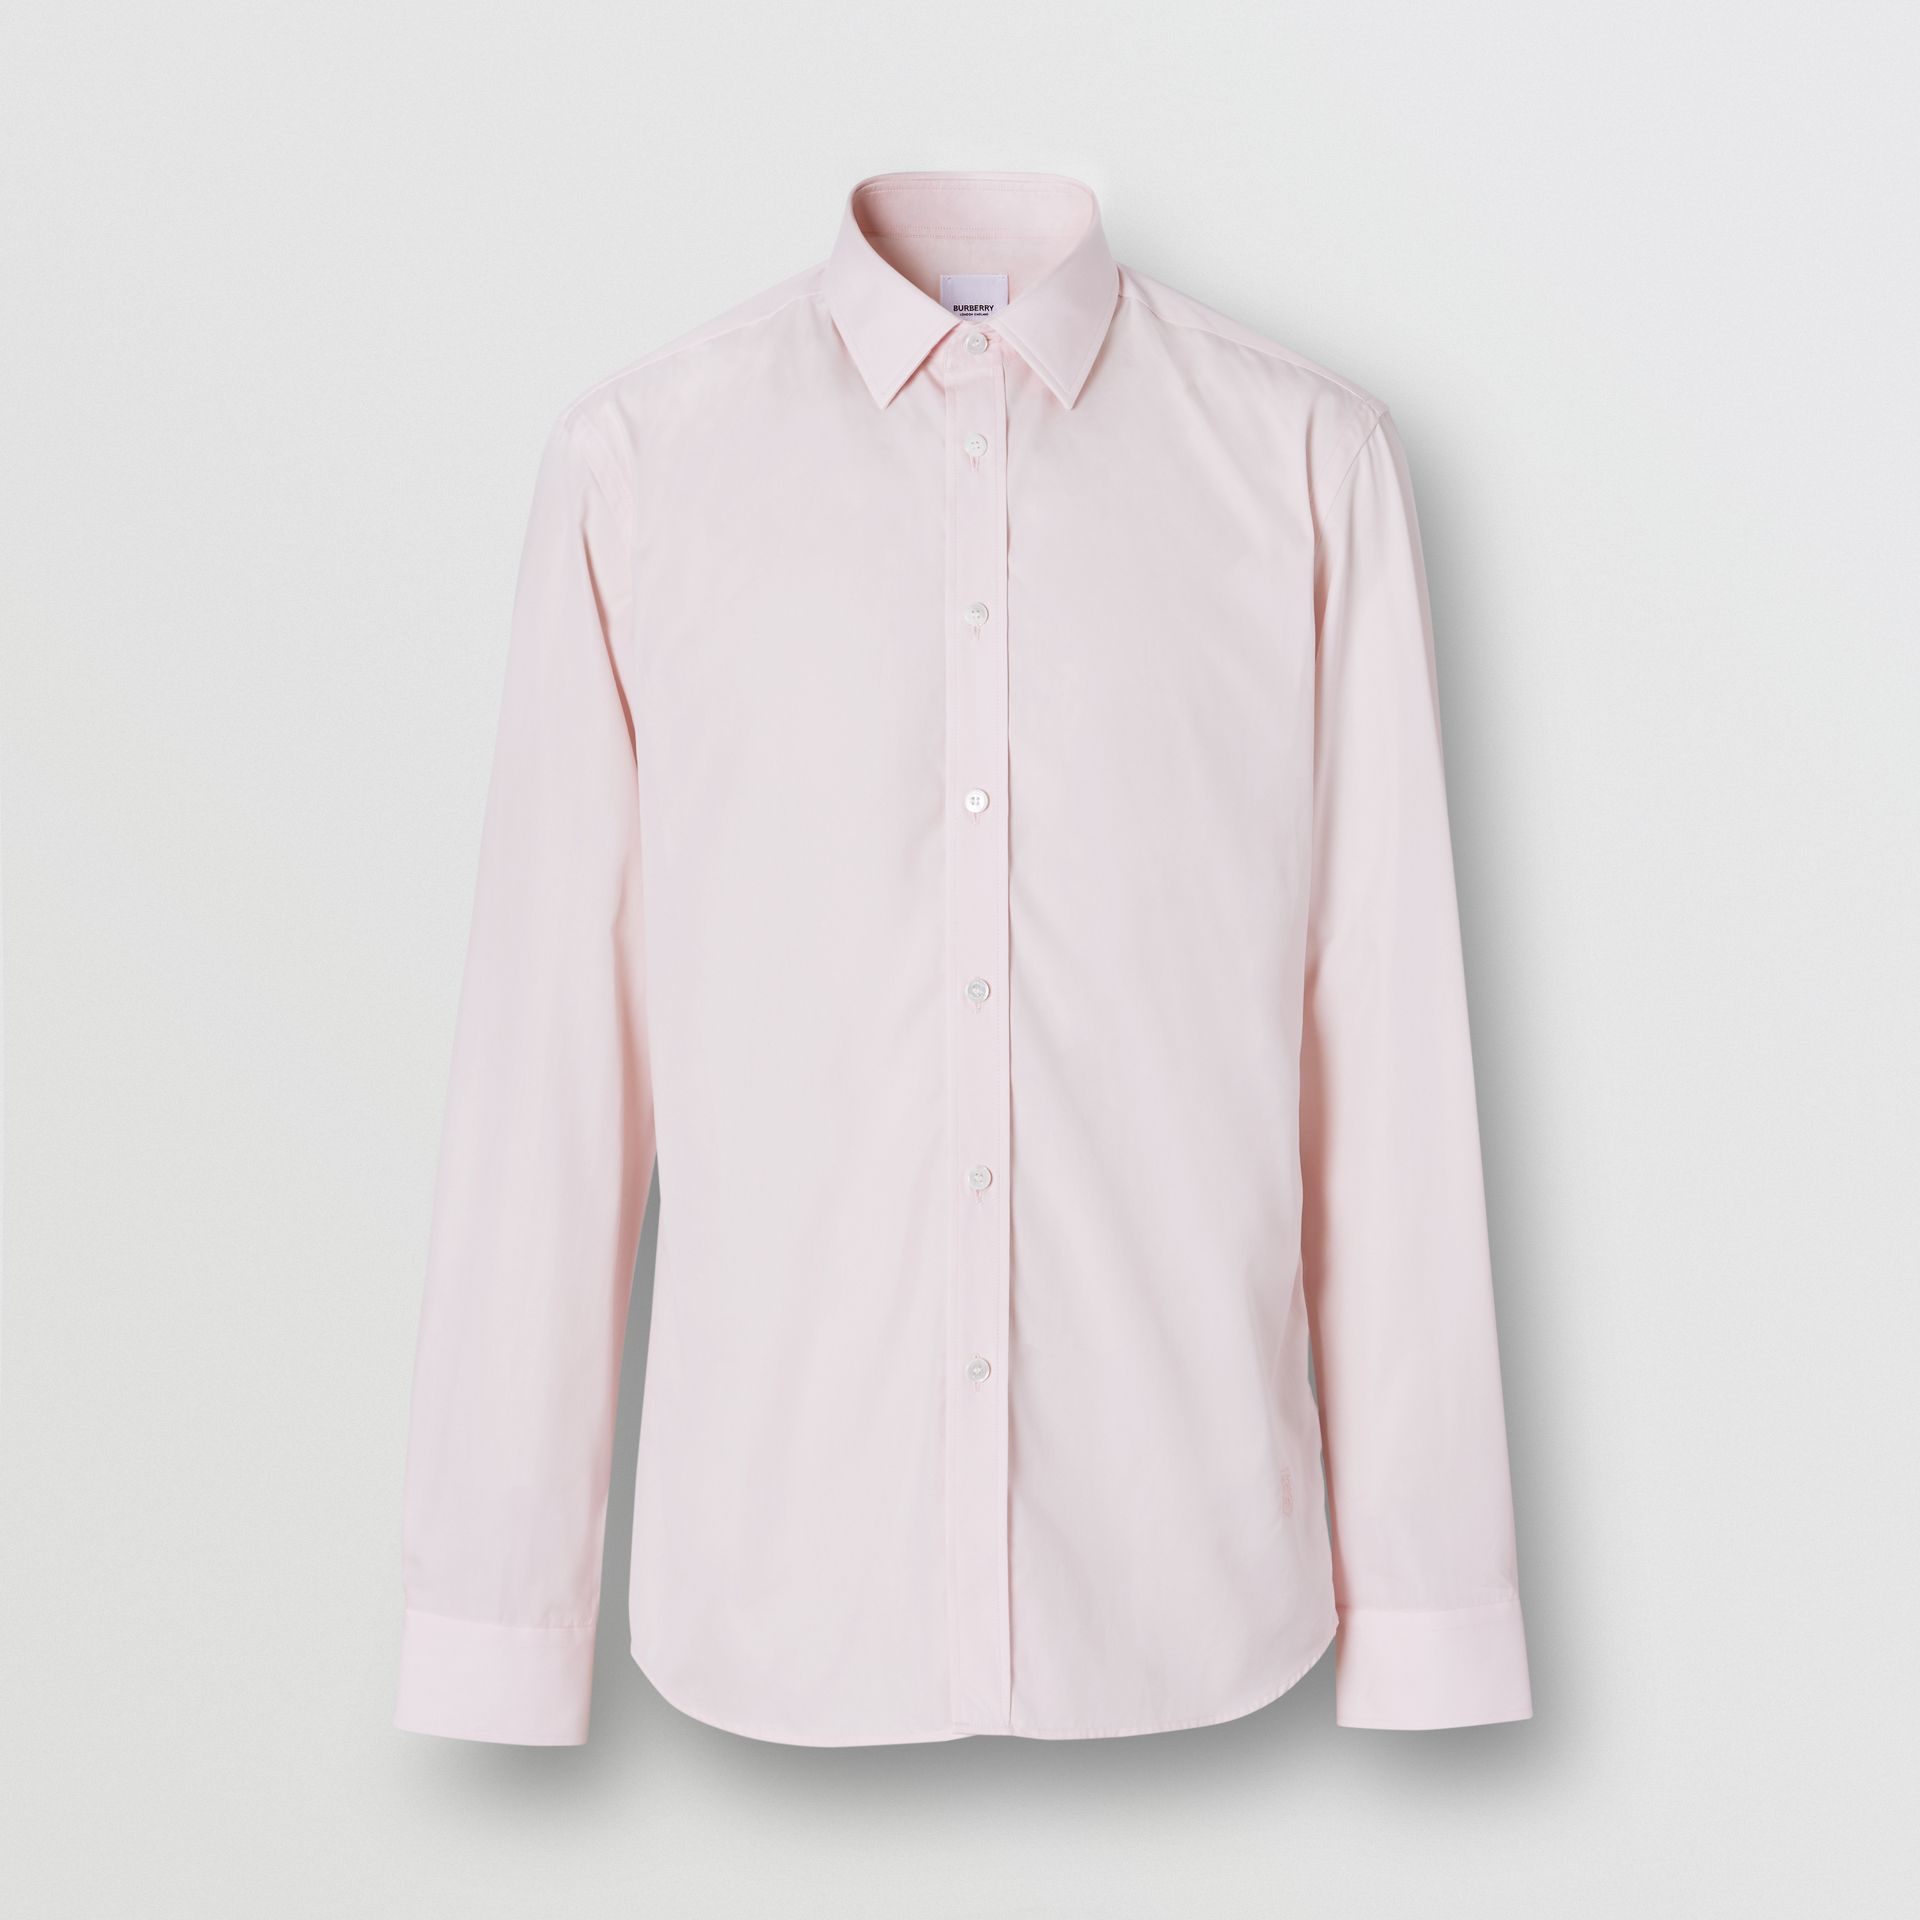 Slim Fit Monogram Motif Cotton Poplin Shirt in Alabaster Pink - Men | Burberry - gallery image 3